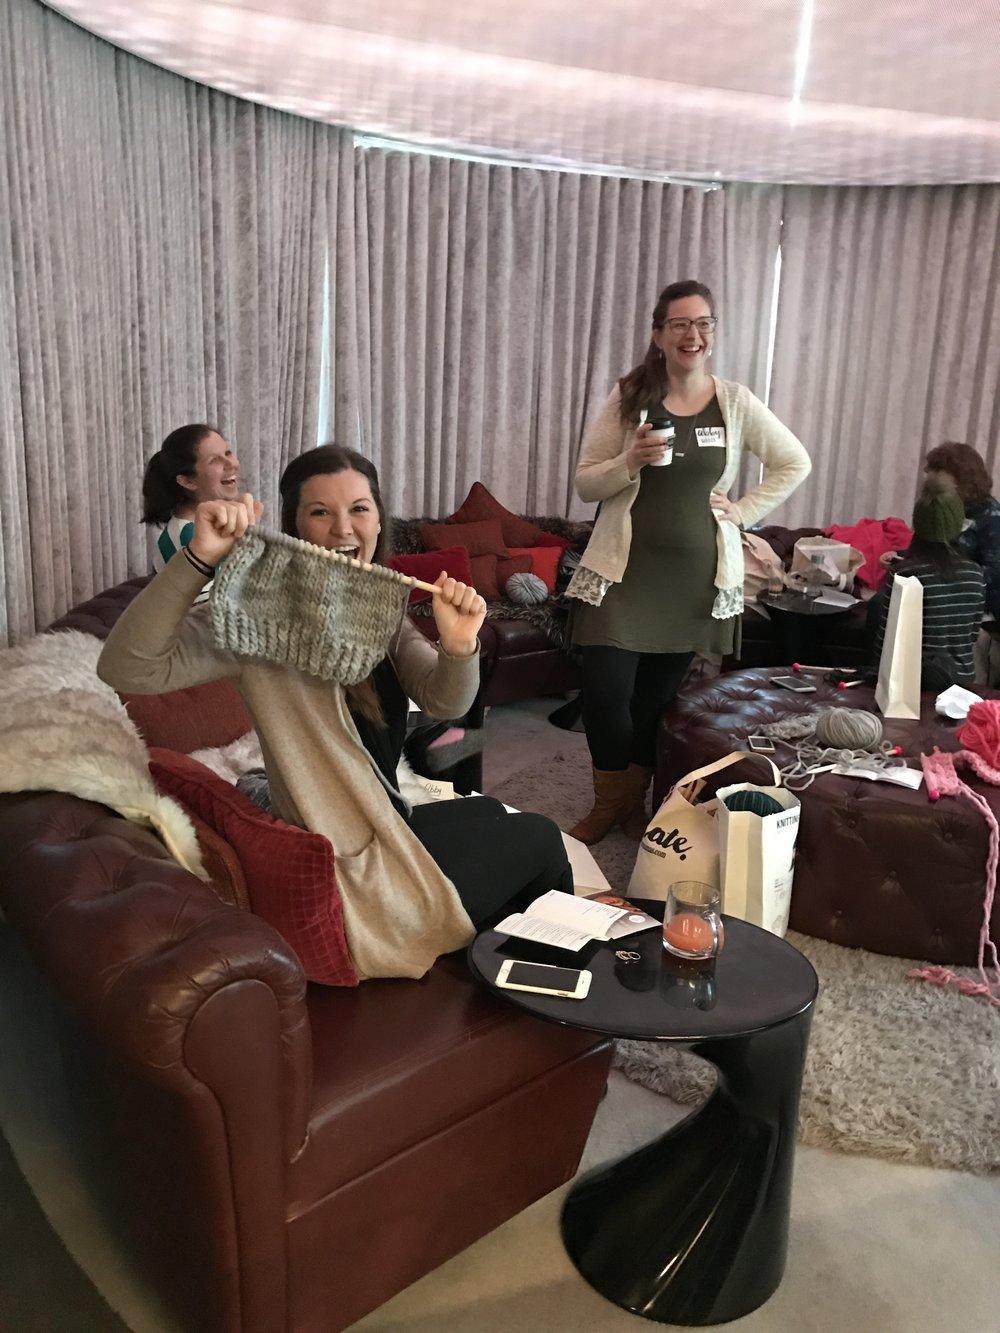 Brunch & Knitting Just Makes People Happy